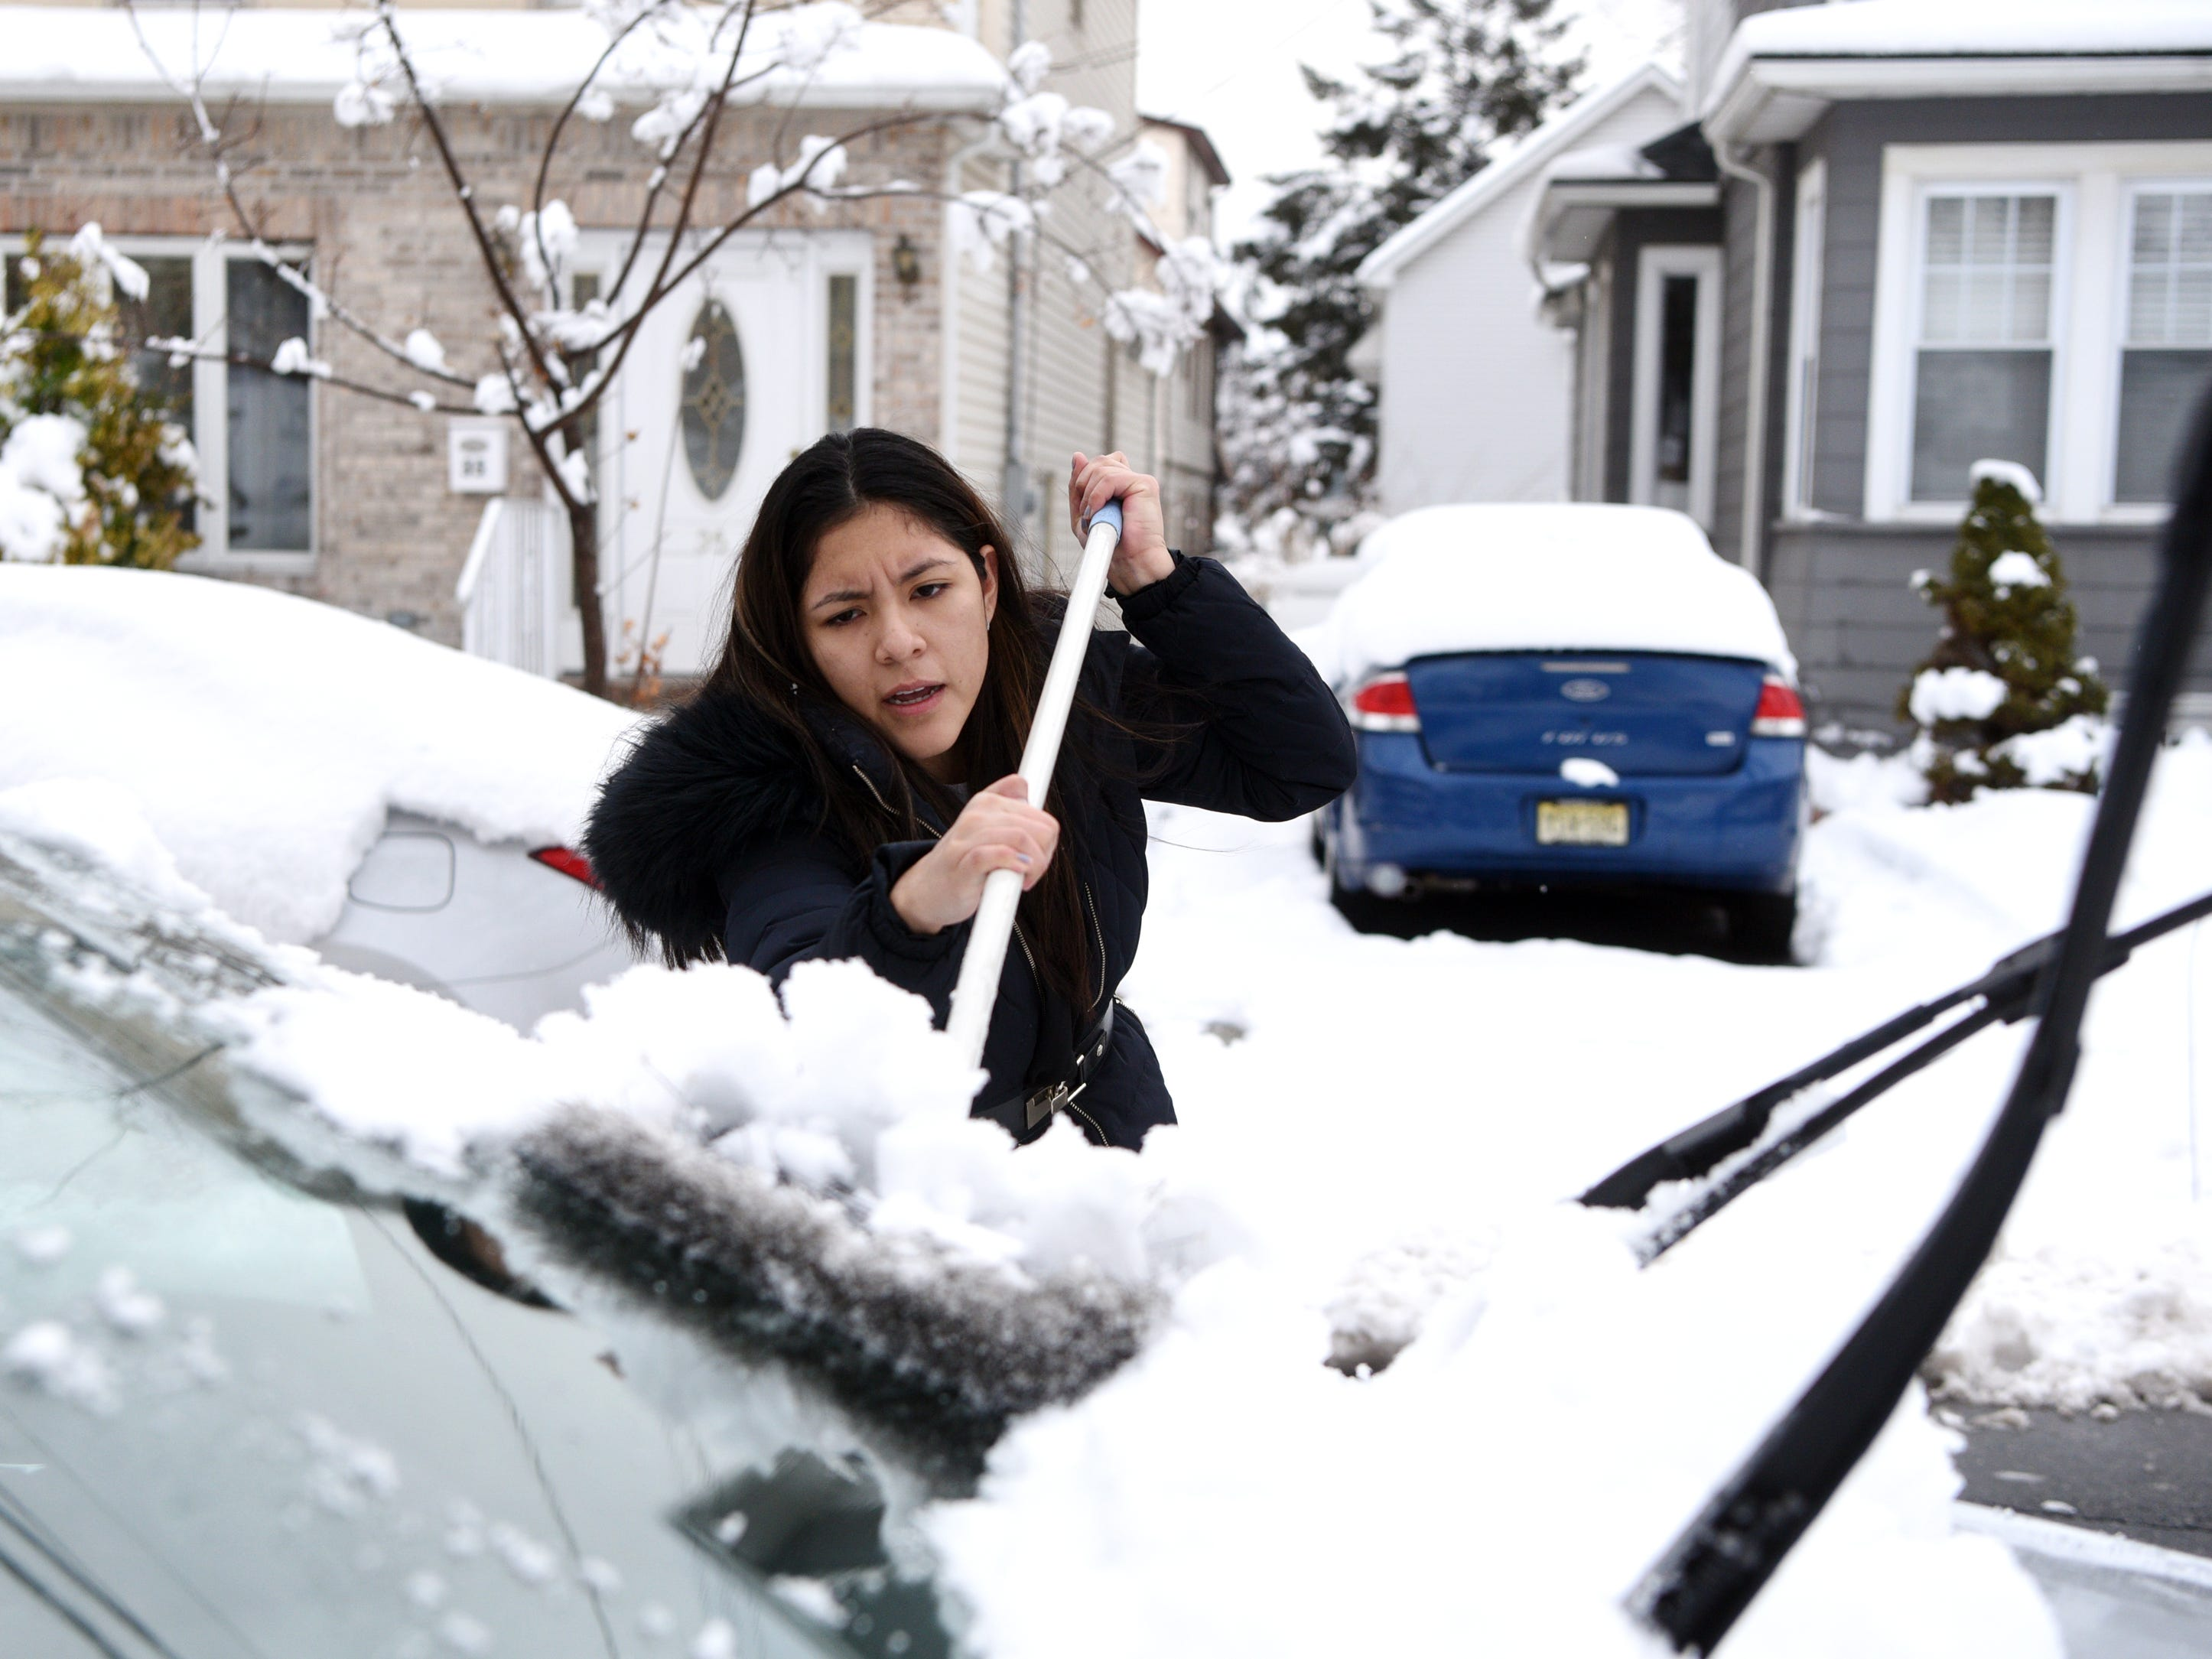 Gia Tapia clears snow from her car on Ward St. in Clifton so she can get to work on Monday, March 4, 2019.